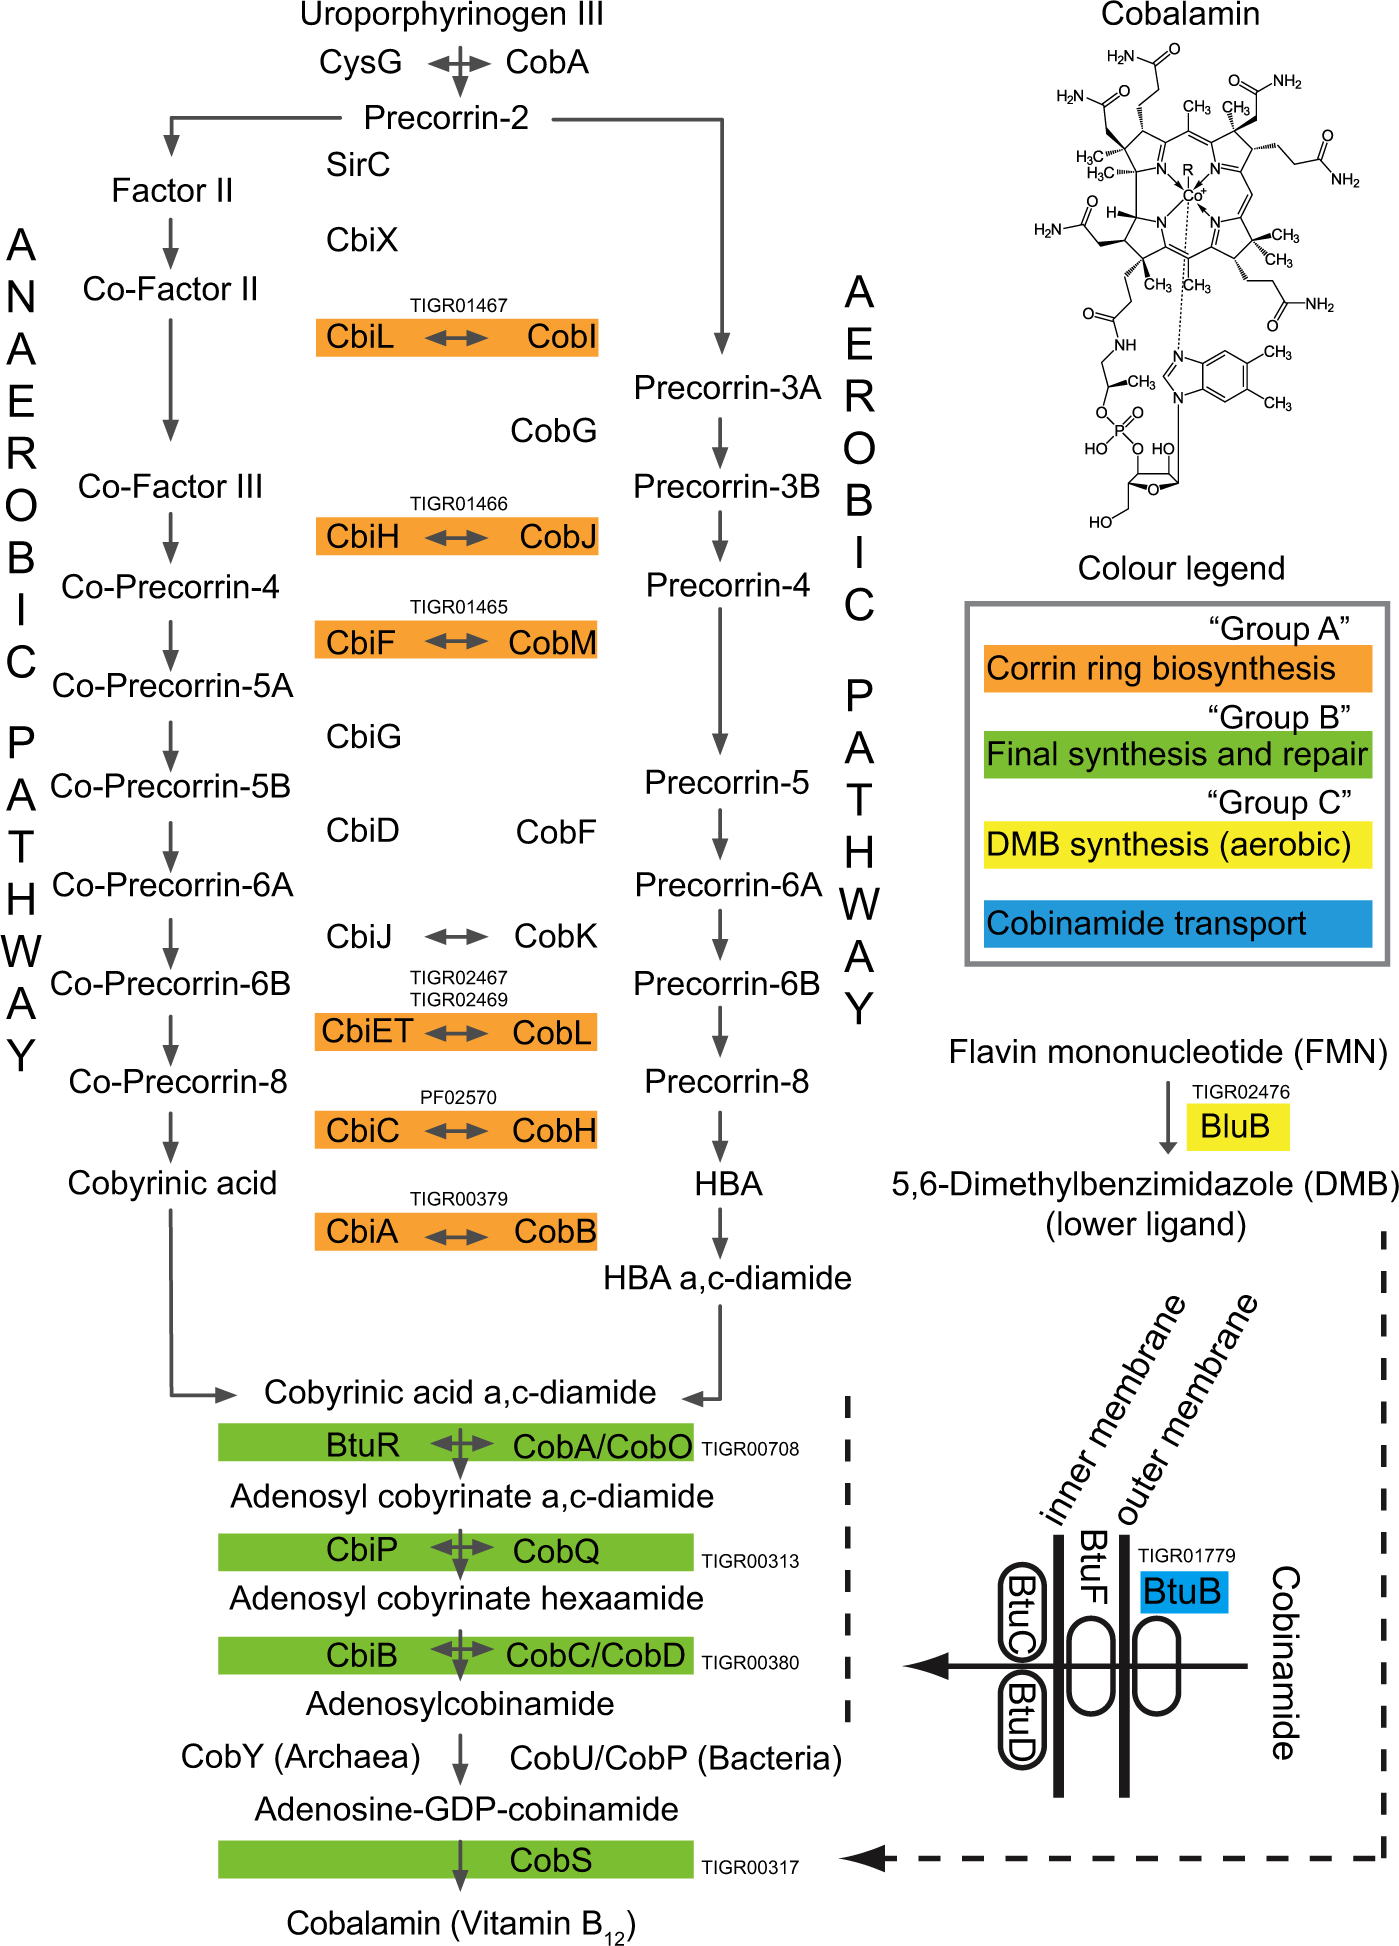 Metagenomic and chemical characterization of soil cobalamin production